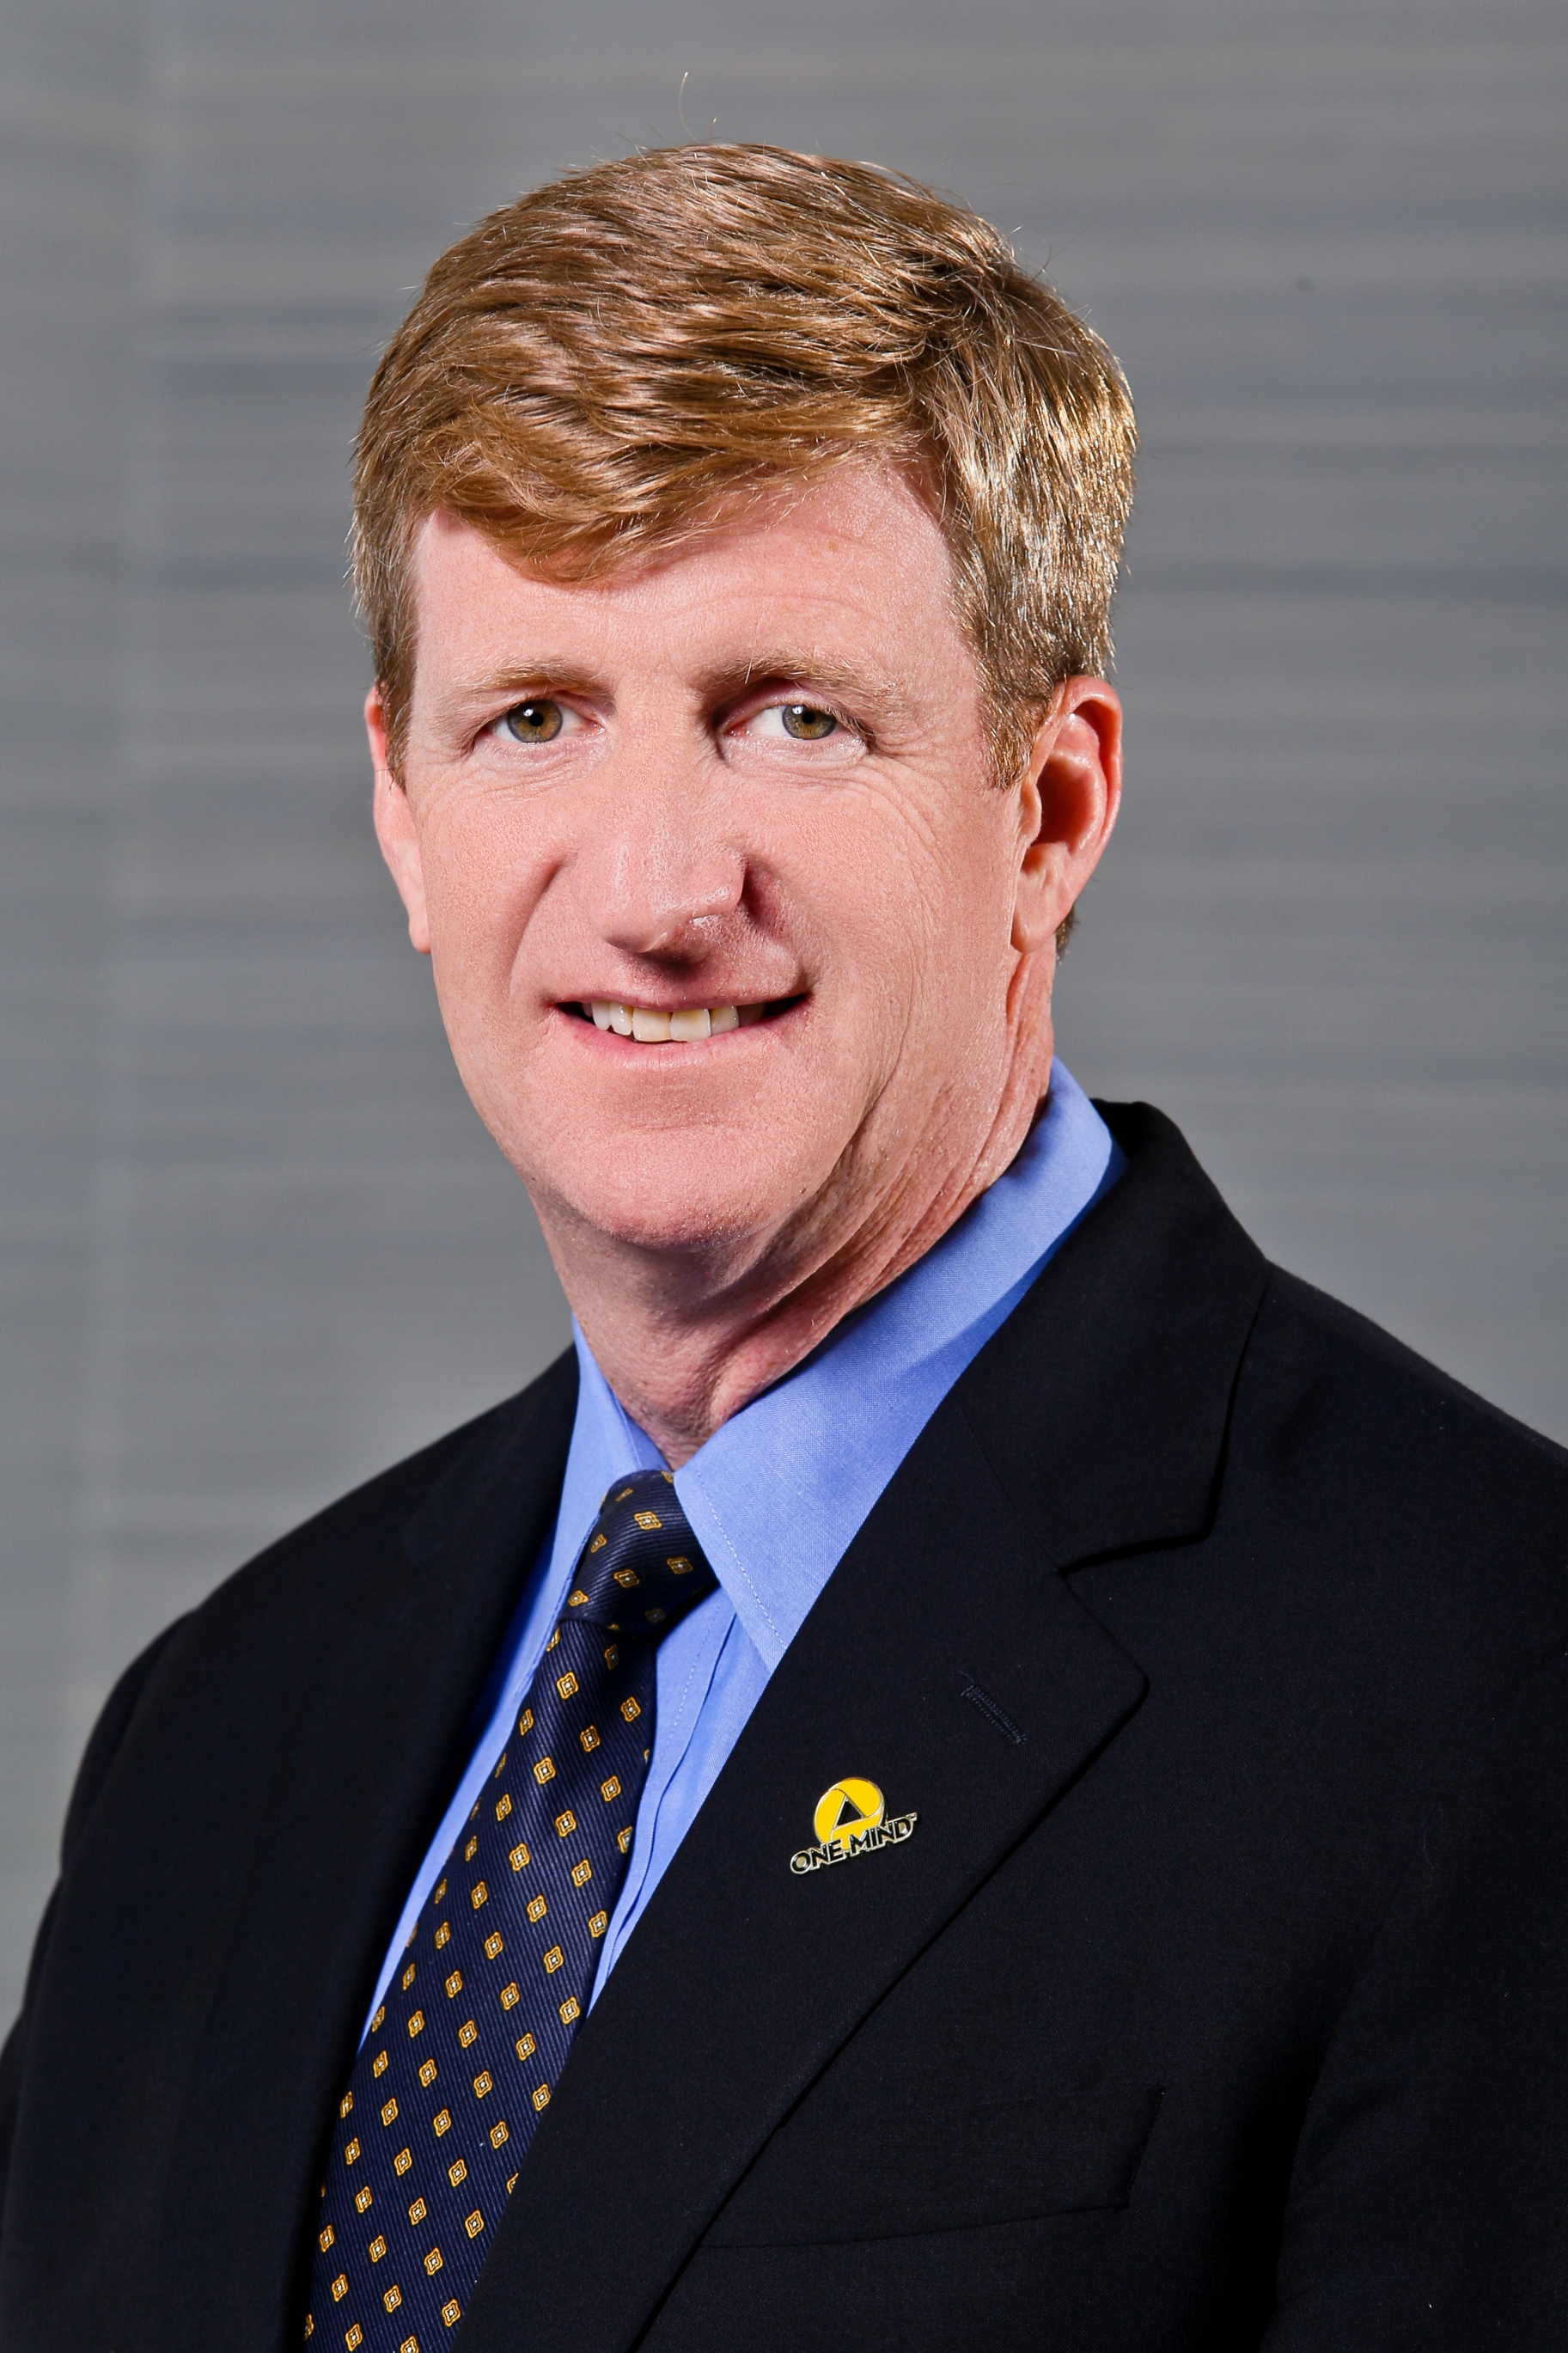 Patrick Kennedy pic